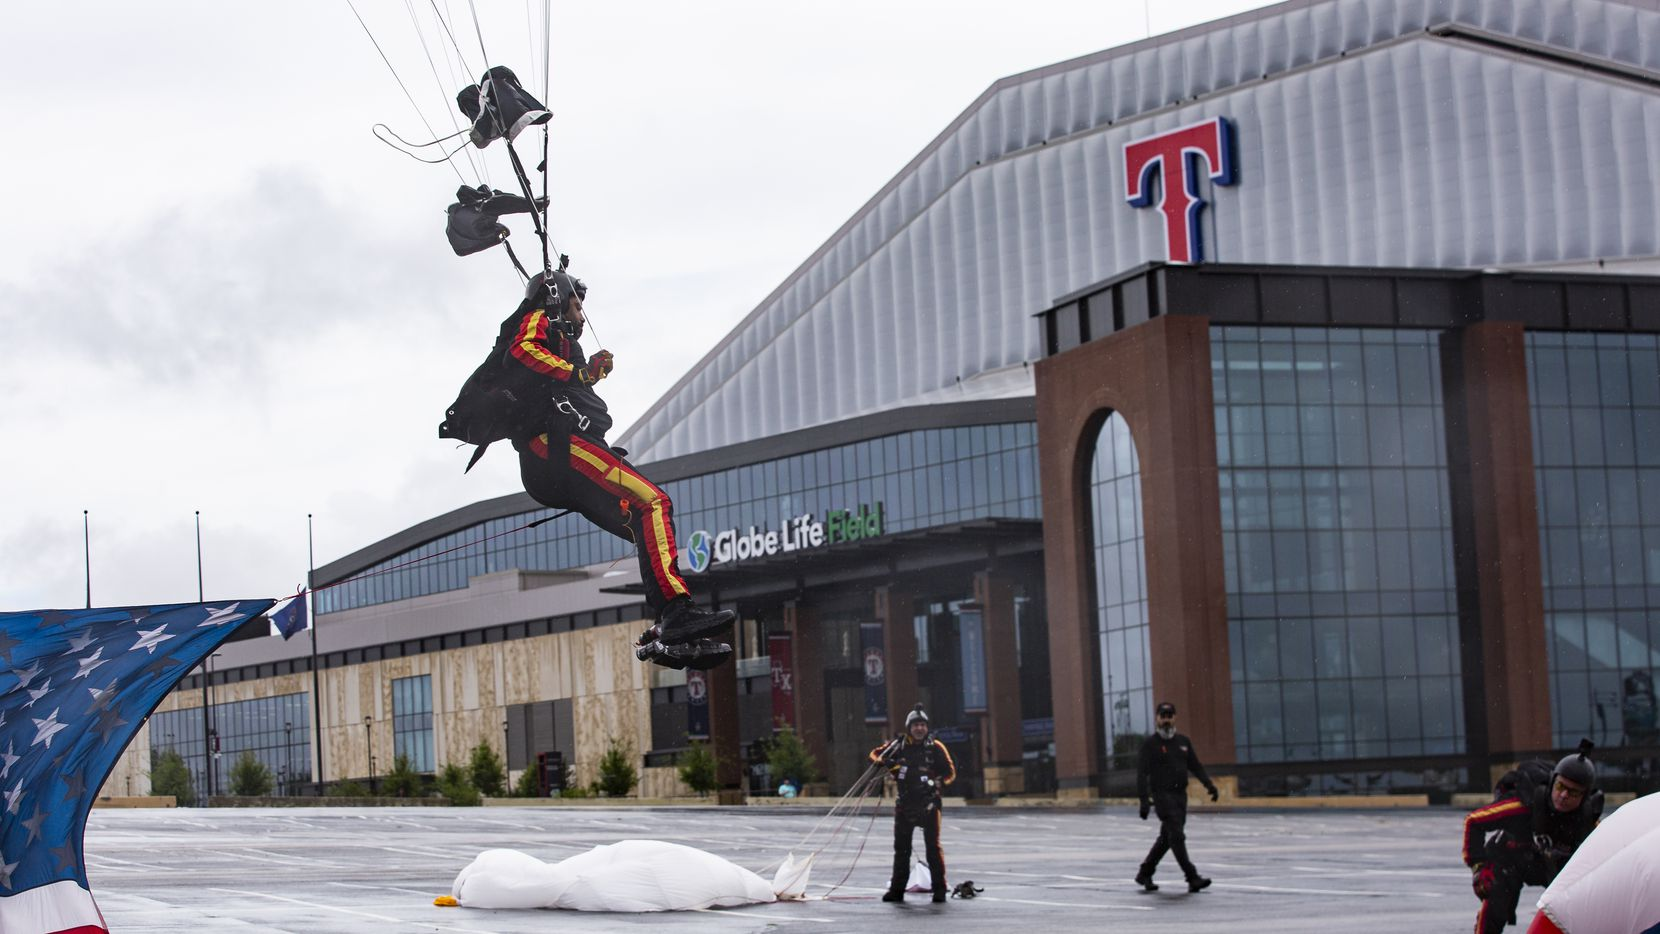 President of the All Veteran Group Mike Elliott lands at the Globe Life Field parking lot after parachuting with an American flag as part of Operation Airdrop on May 25, 2020 in Arlington. The Memorial Day event was held to honor frontline workers and departed military personnel.